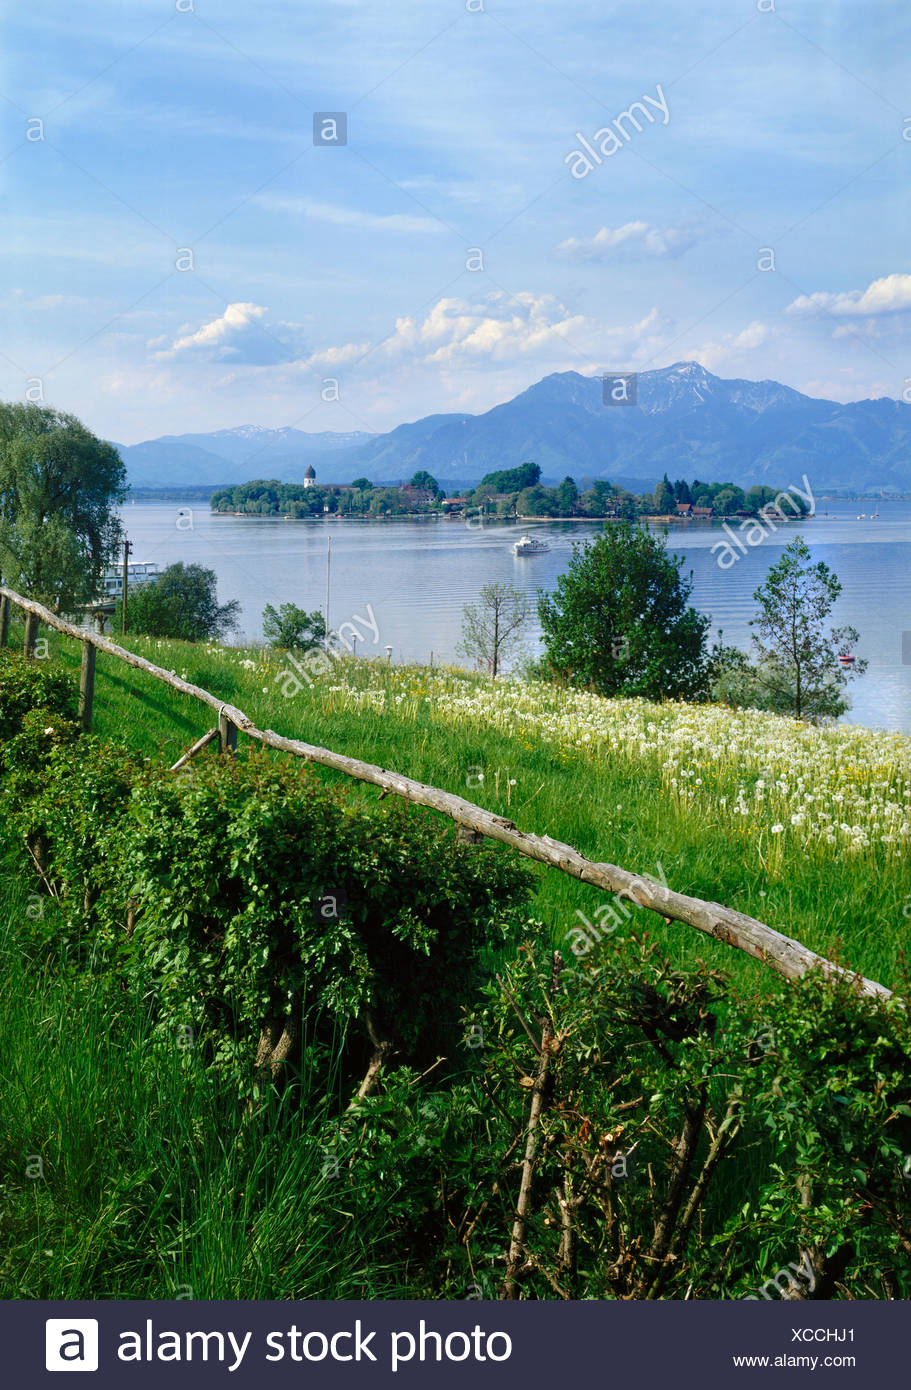 The Island Fraueninsel, Chiemsee lake in front of the Hochgern Mountain, Chiemgau, Upper Bavaria, Bavaria, Germany, Europe Stock Photo